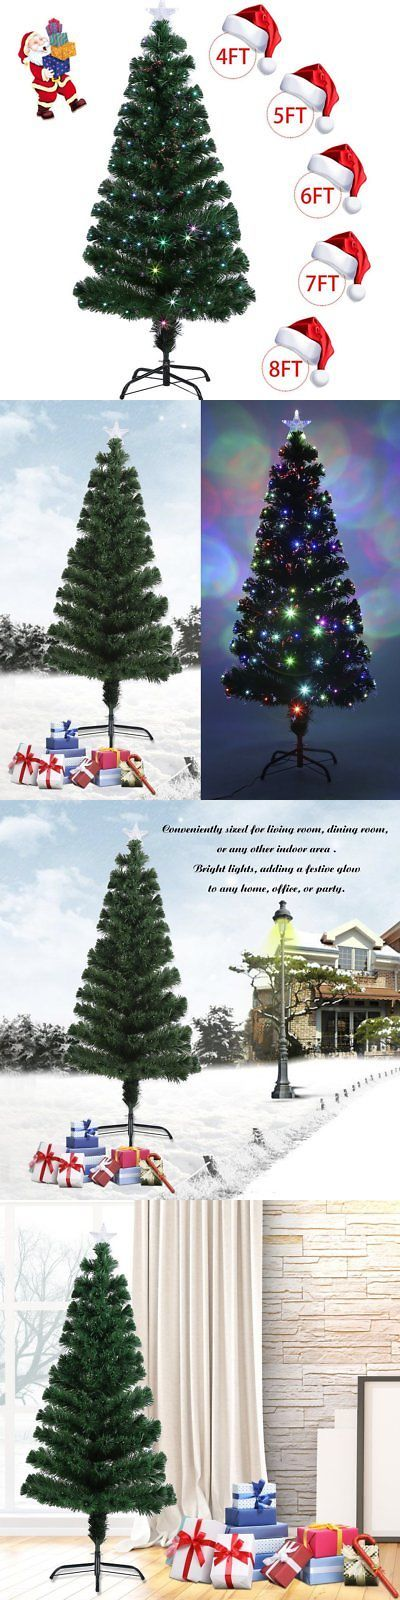 Artificial Christmas Trees 117414 5-8Ft Colorful Led Color Changing